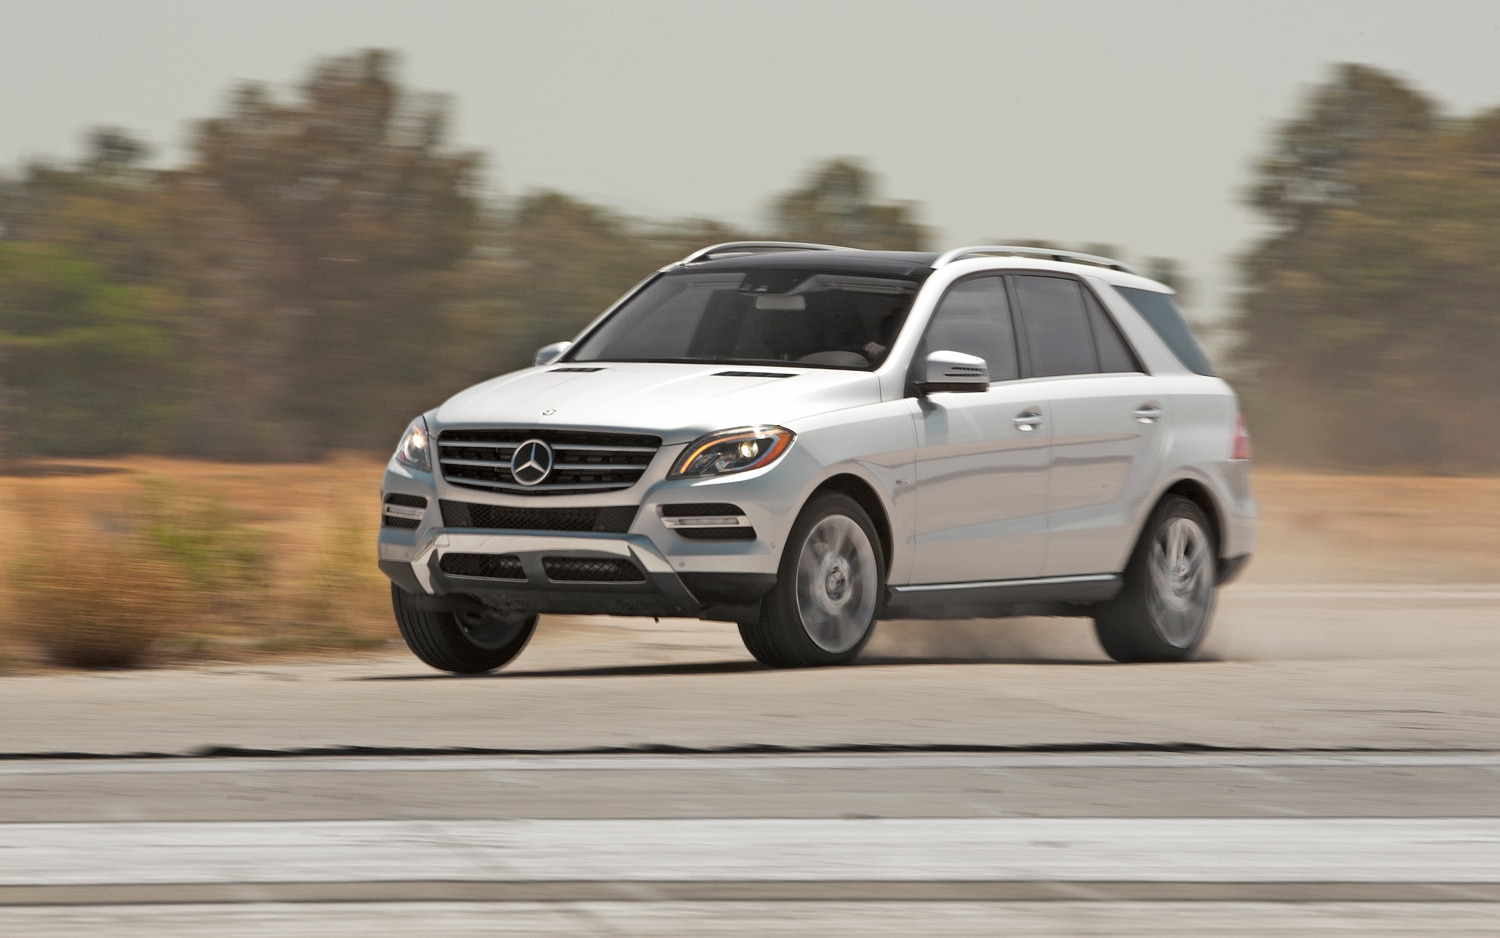 First look 2012 mercedes benz ml63 amg automobile magazine for Mercedes benz ml 350 2012